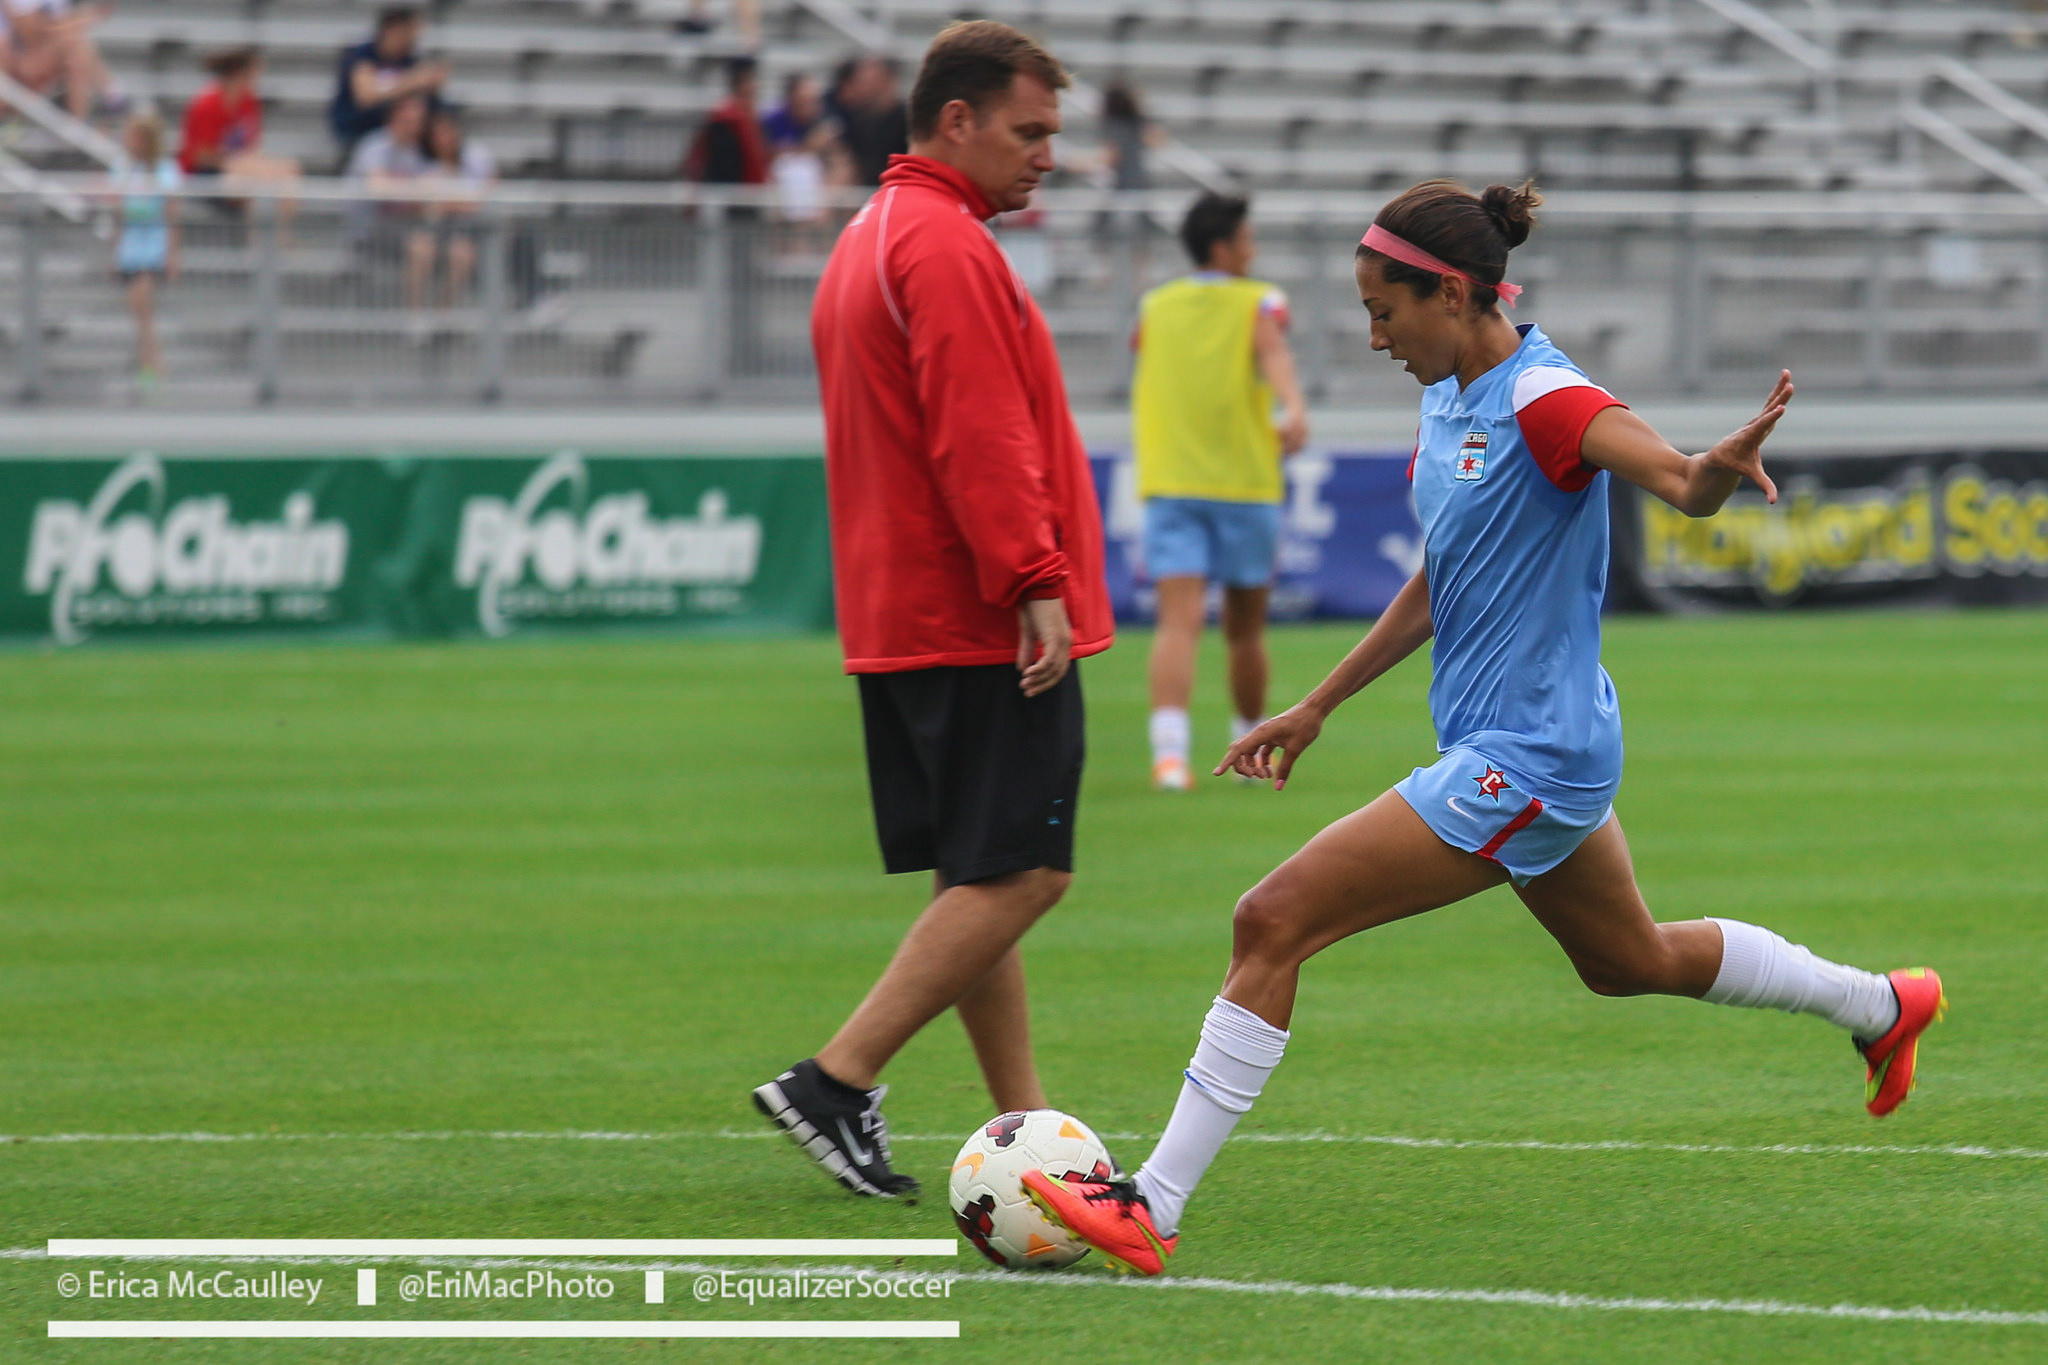 Christen Press had a goal and an assist for Chicago in a critical 2-1 win over FC Kansas City. (Photo Copyright Erica McCaulley for The Equalizer)